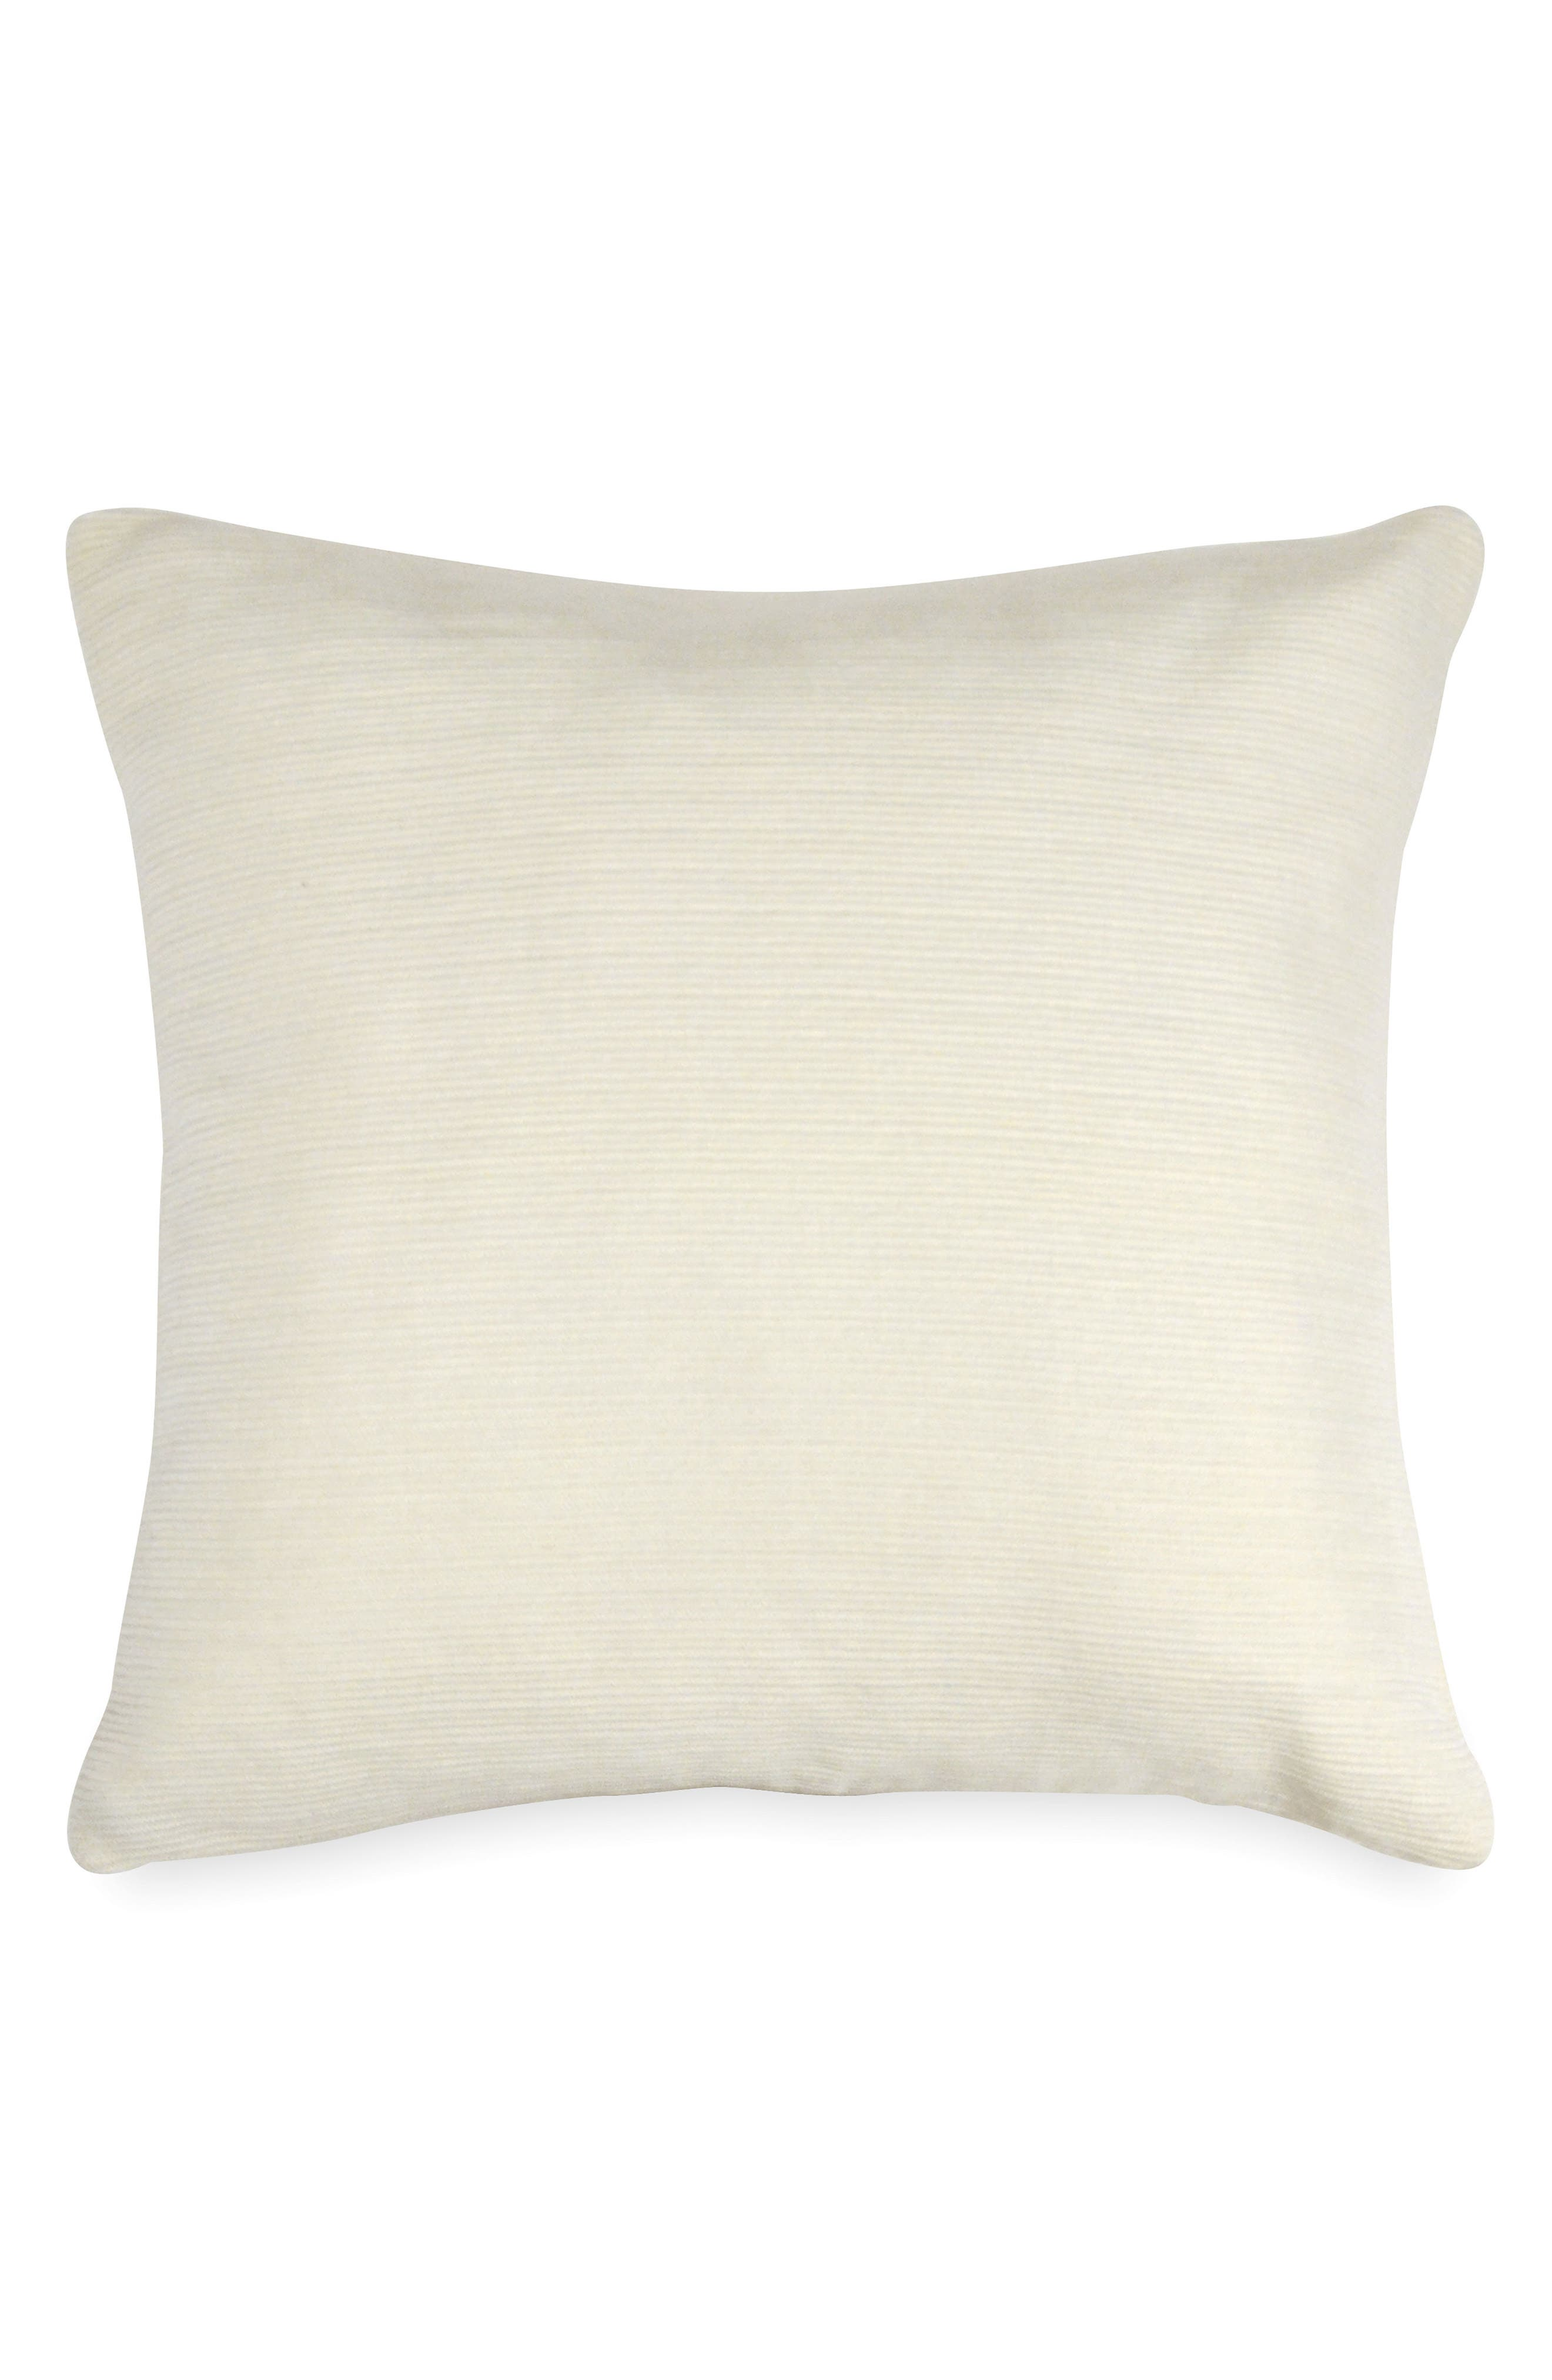 Motion Knit Accent Pillow,                         Main,                         color, Oatmeal